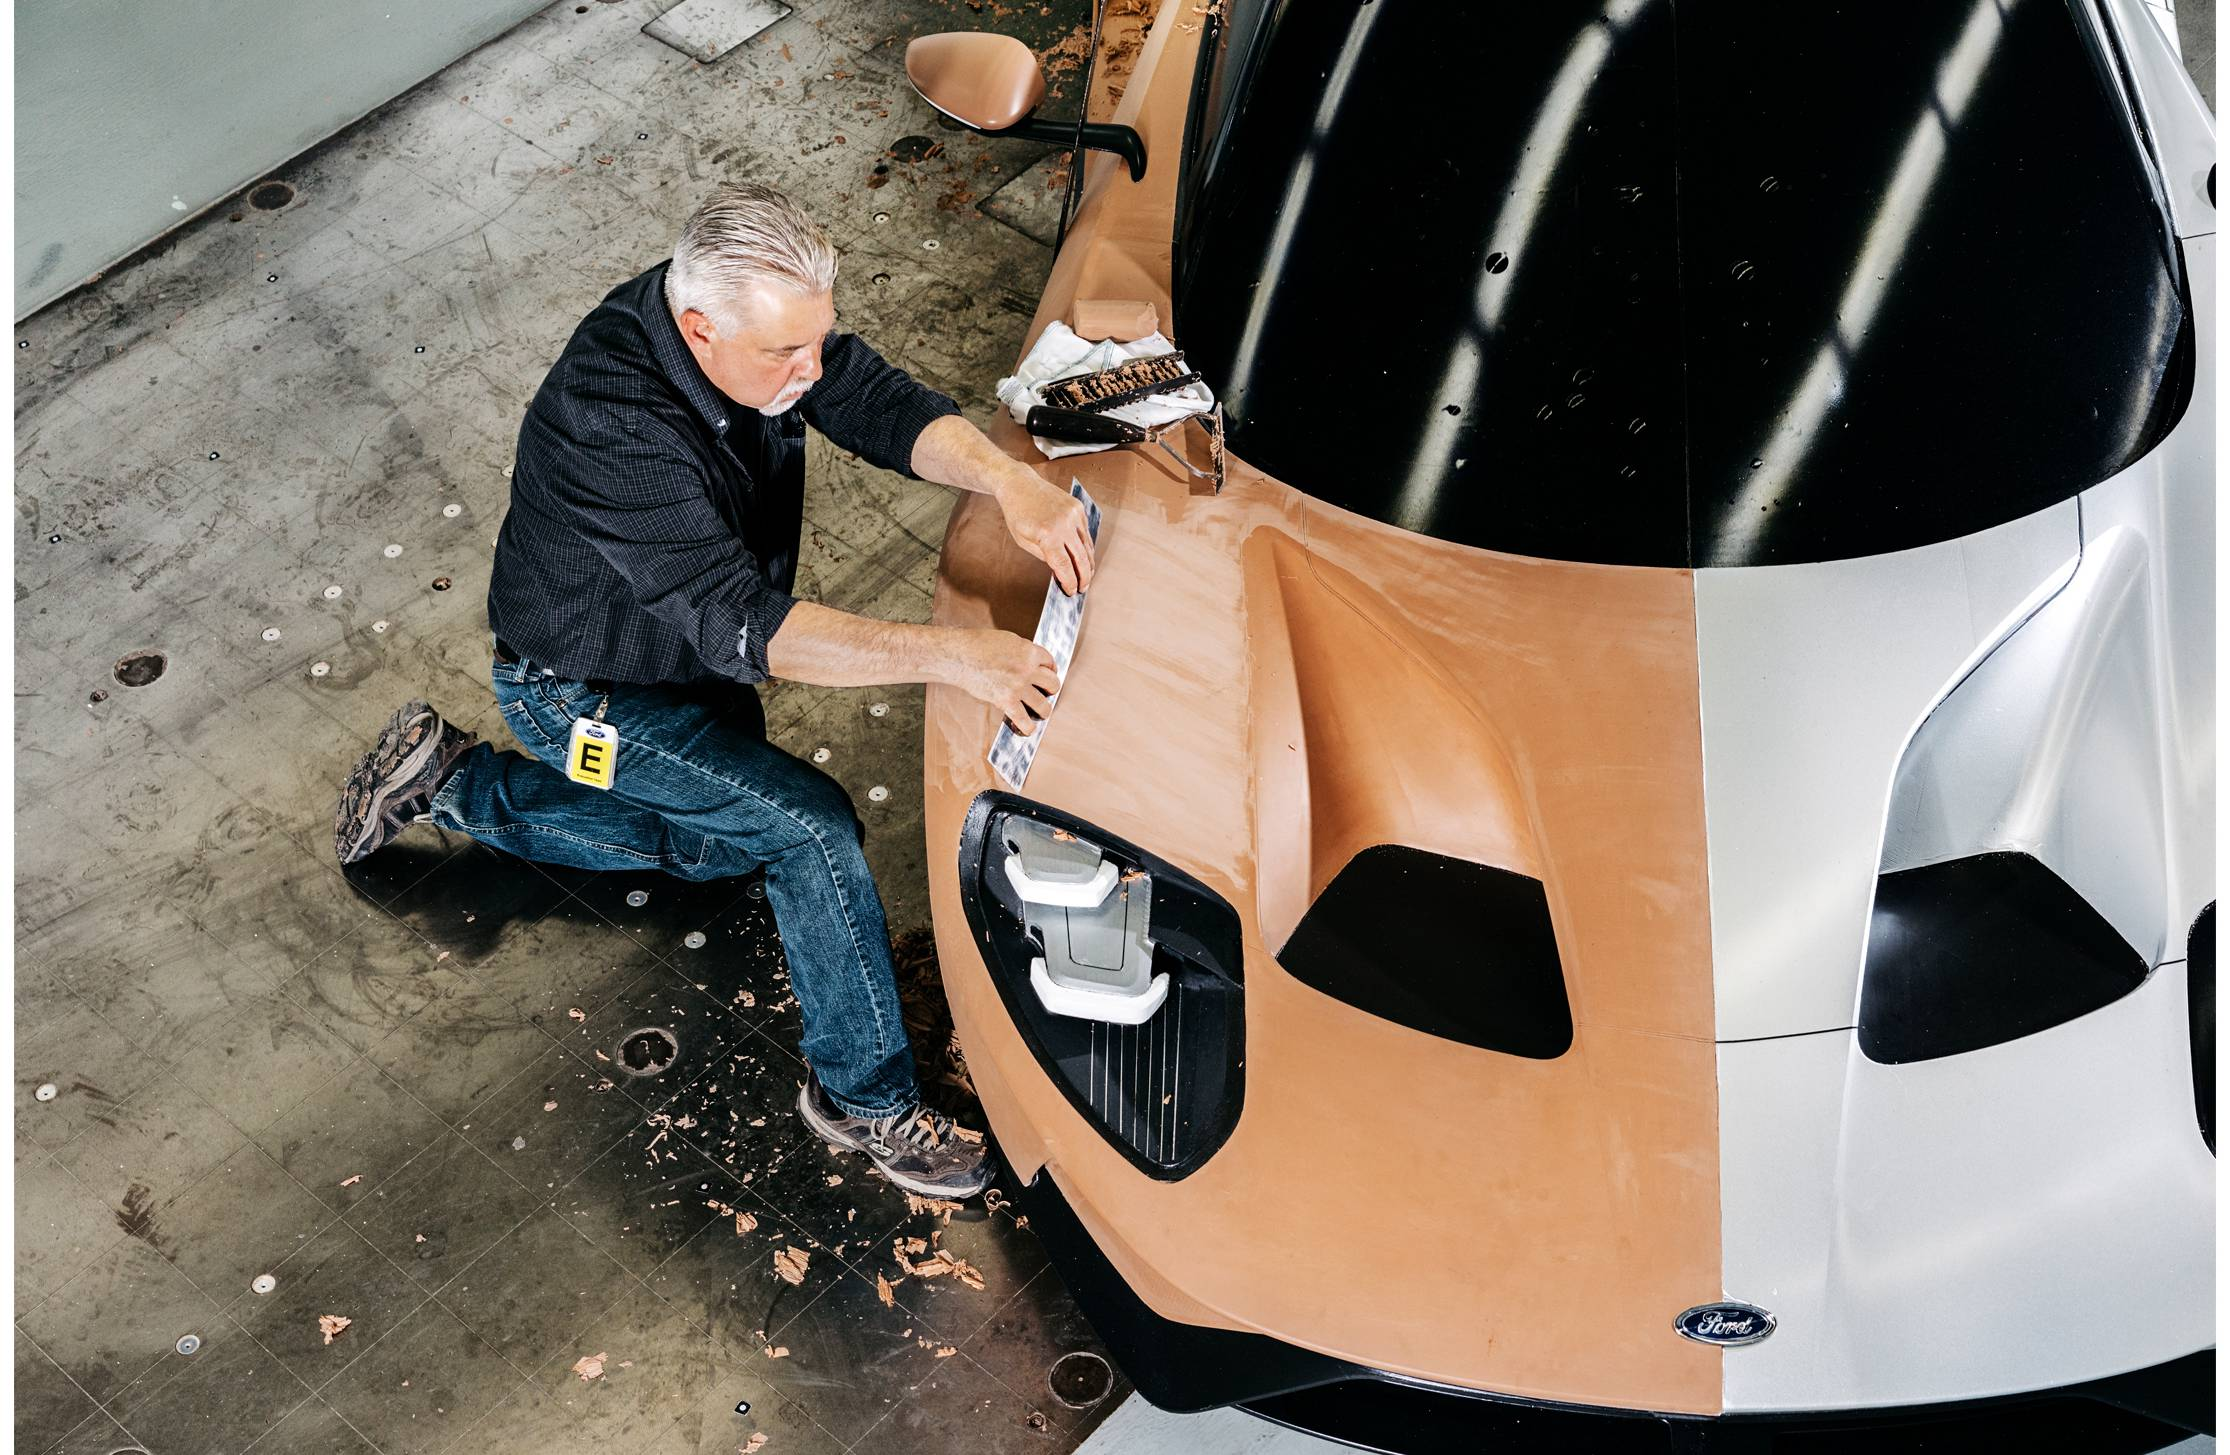 James Dunham, 59, Master Clay Modeler, Ford, No. 9